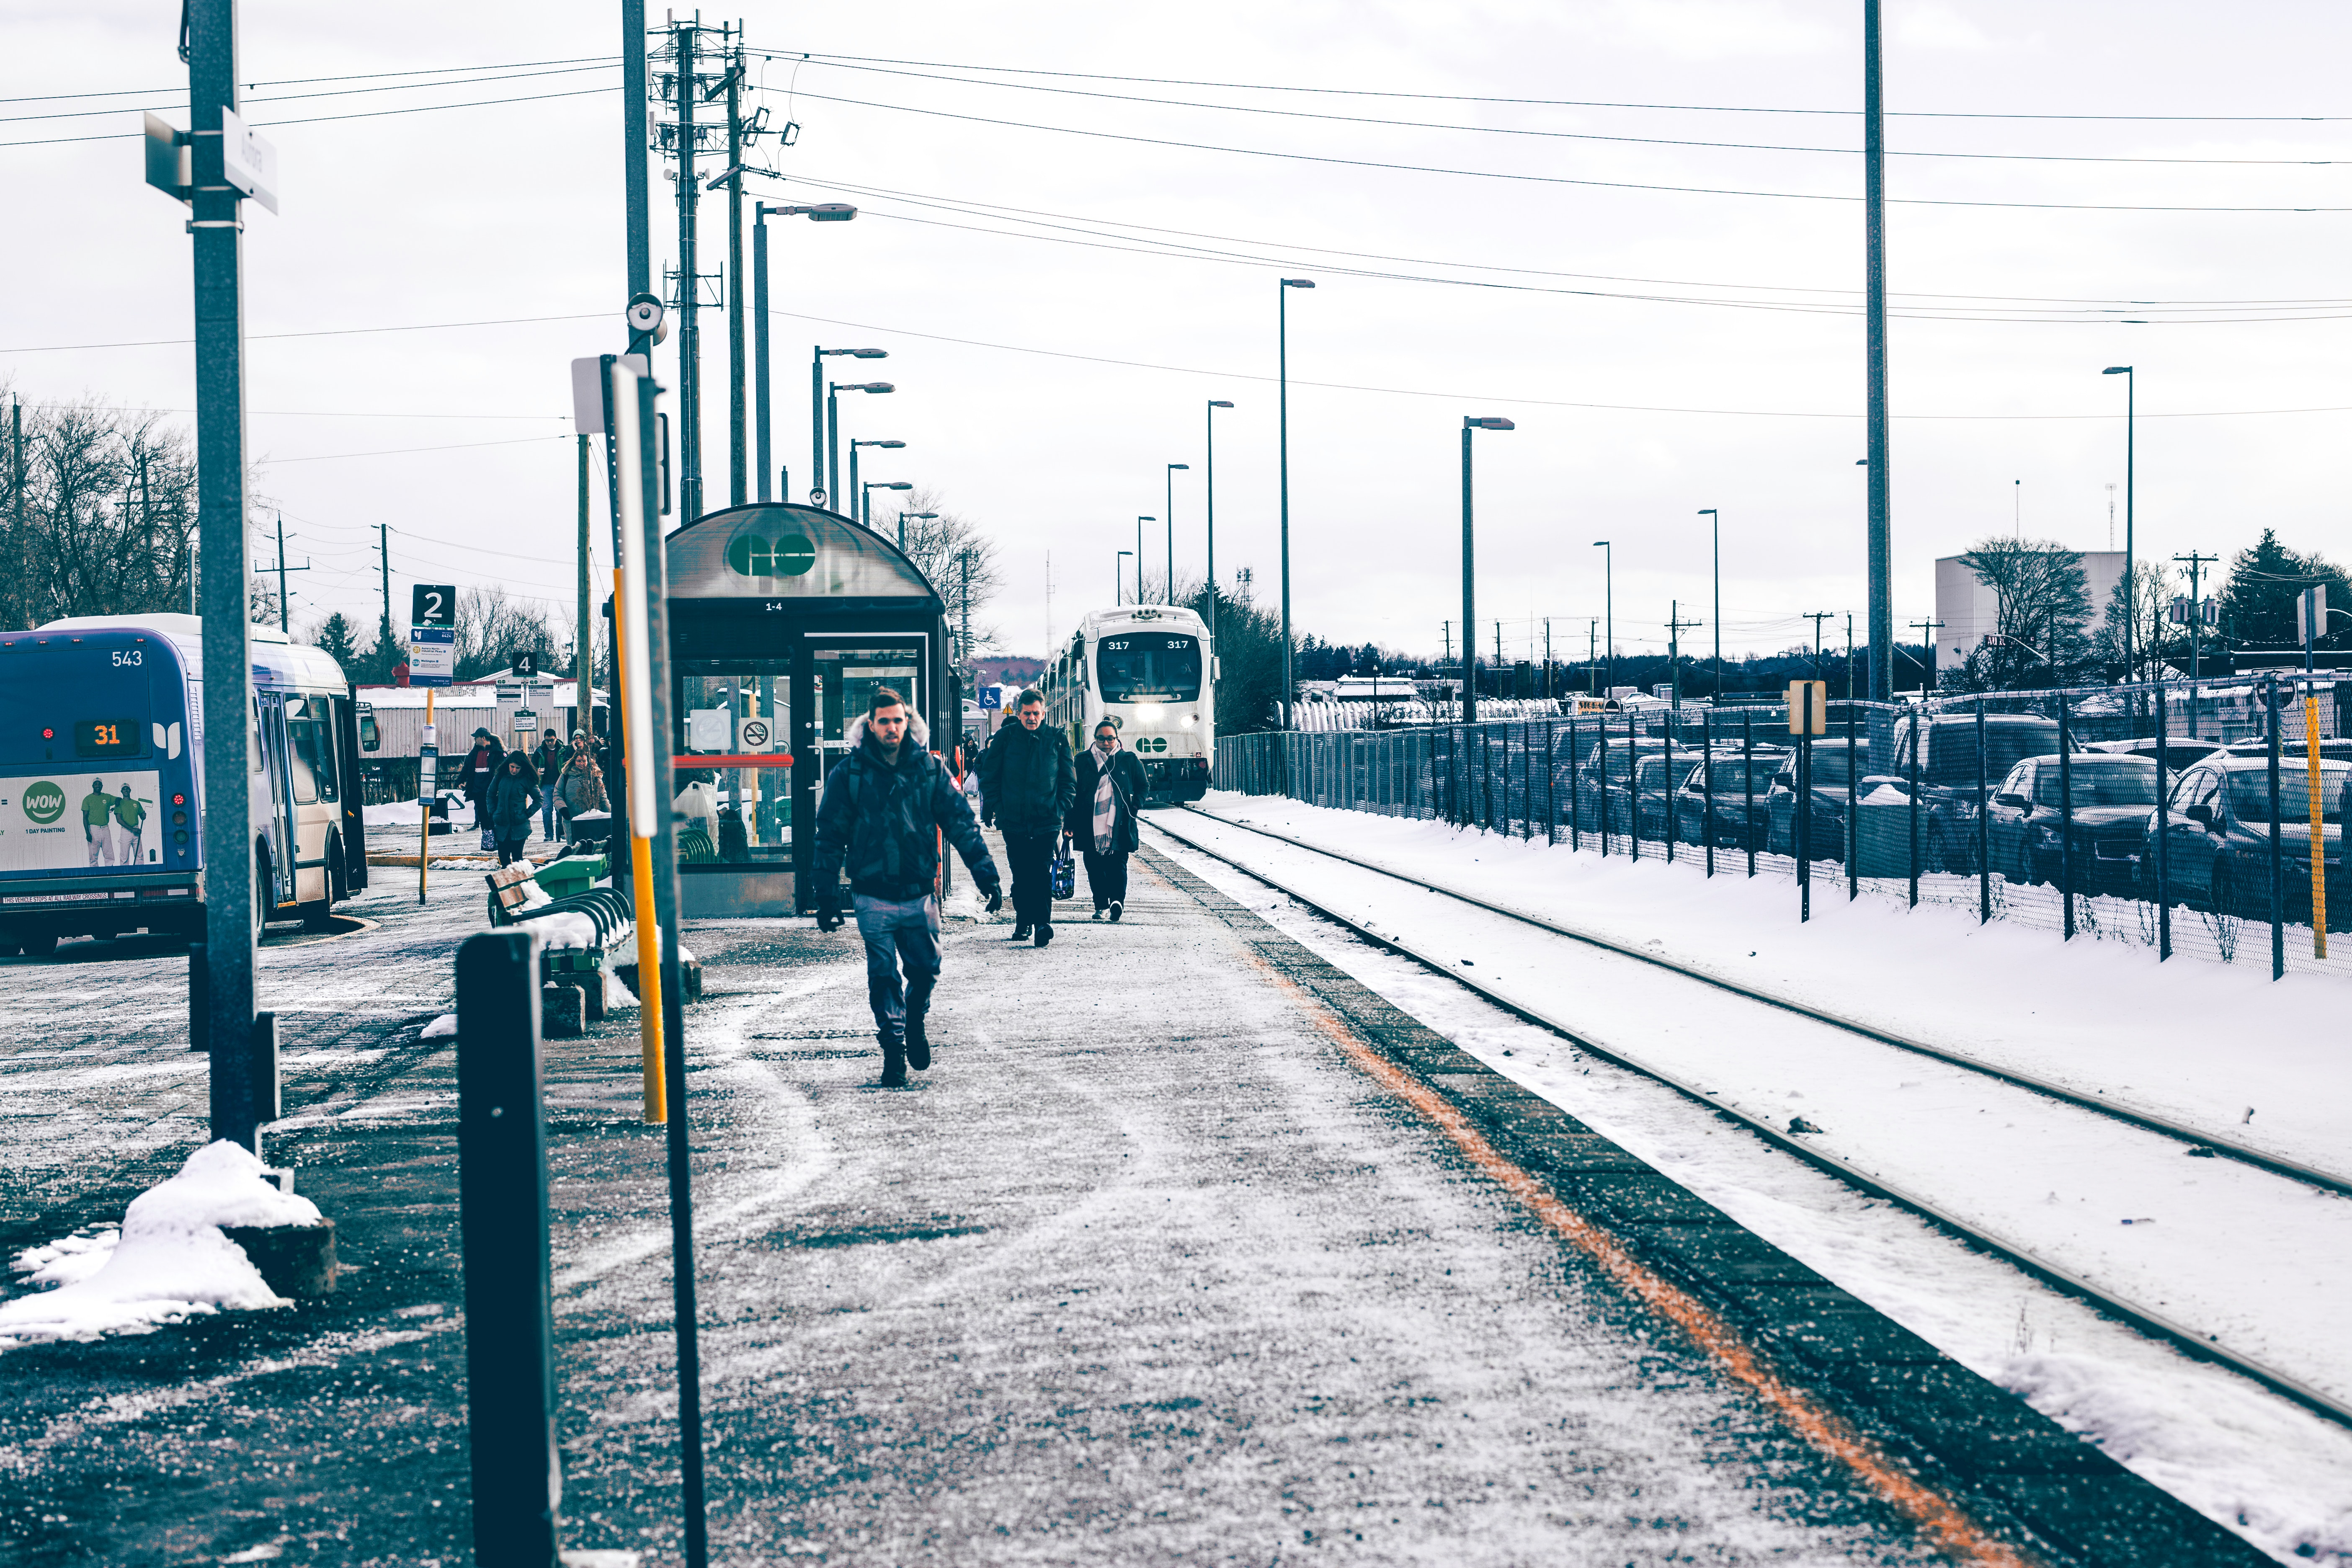 Man Wearing Jacket and Jeans Walking on Road, Road, Snow, Railway, Public, HQ Photo